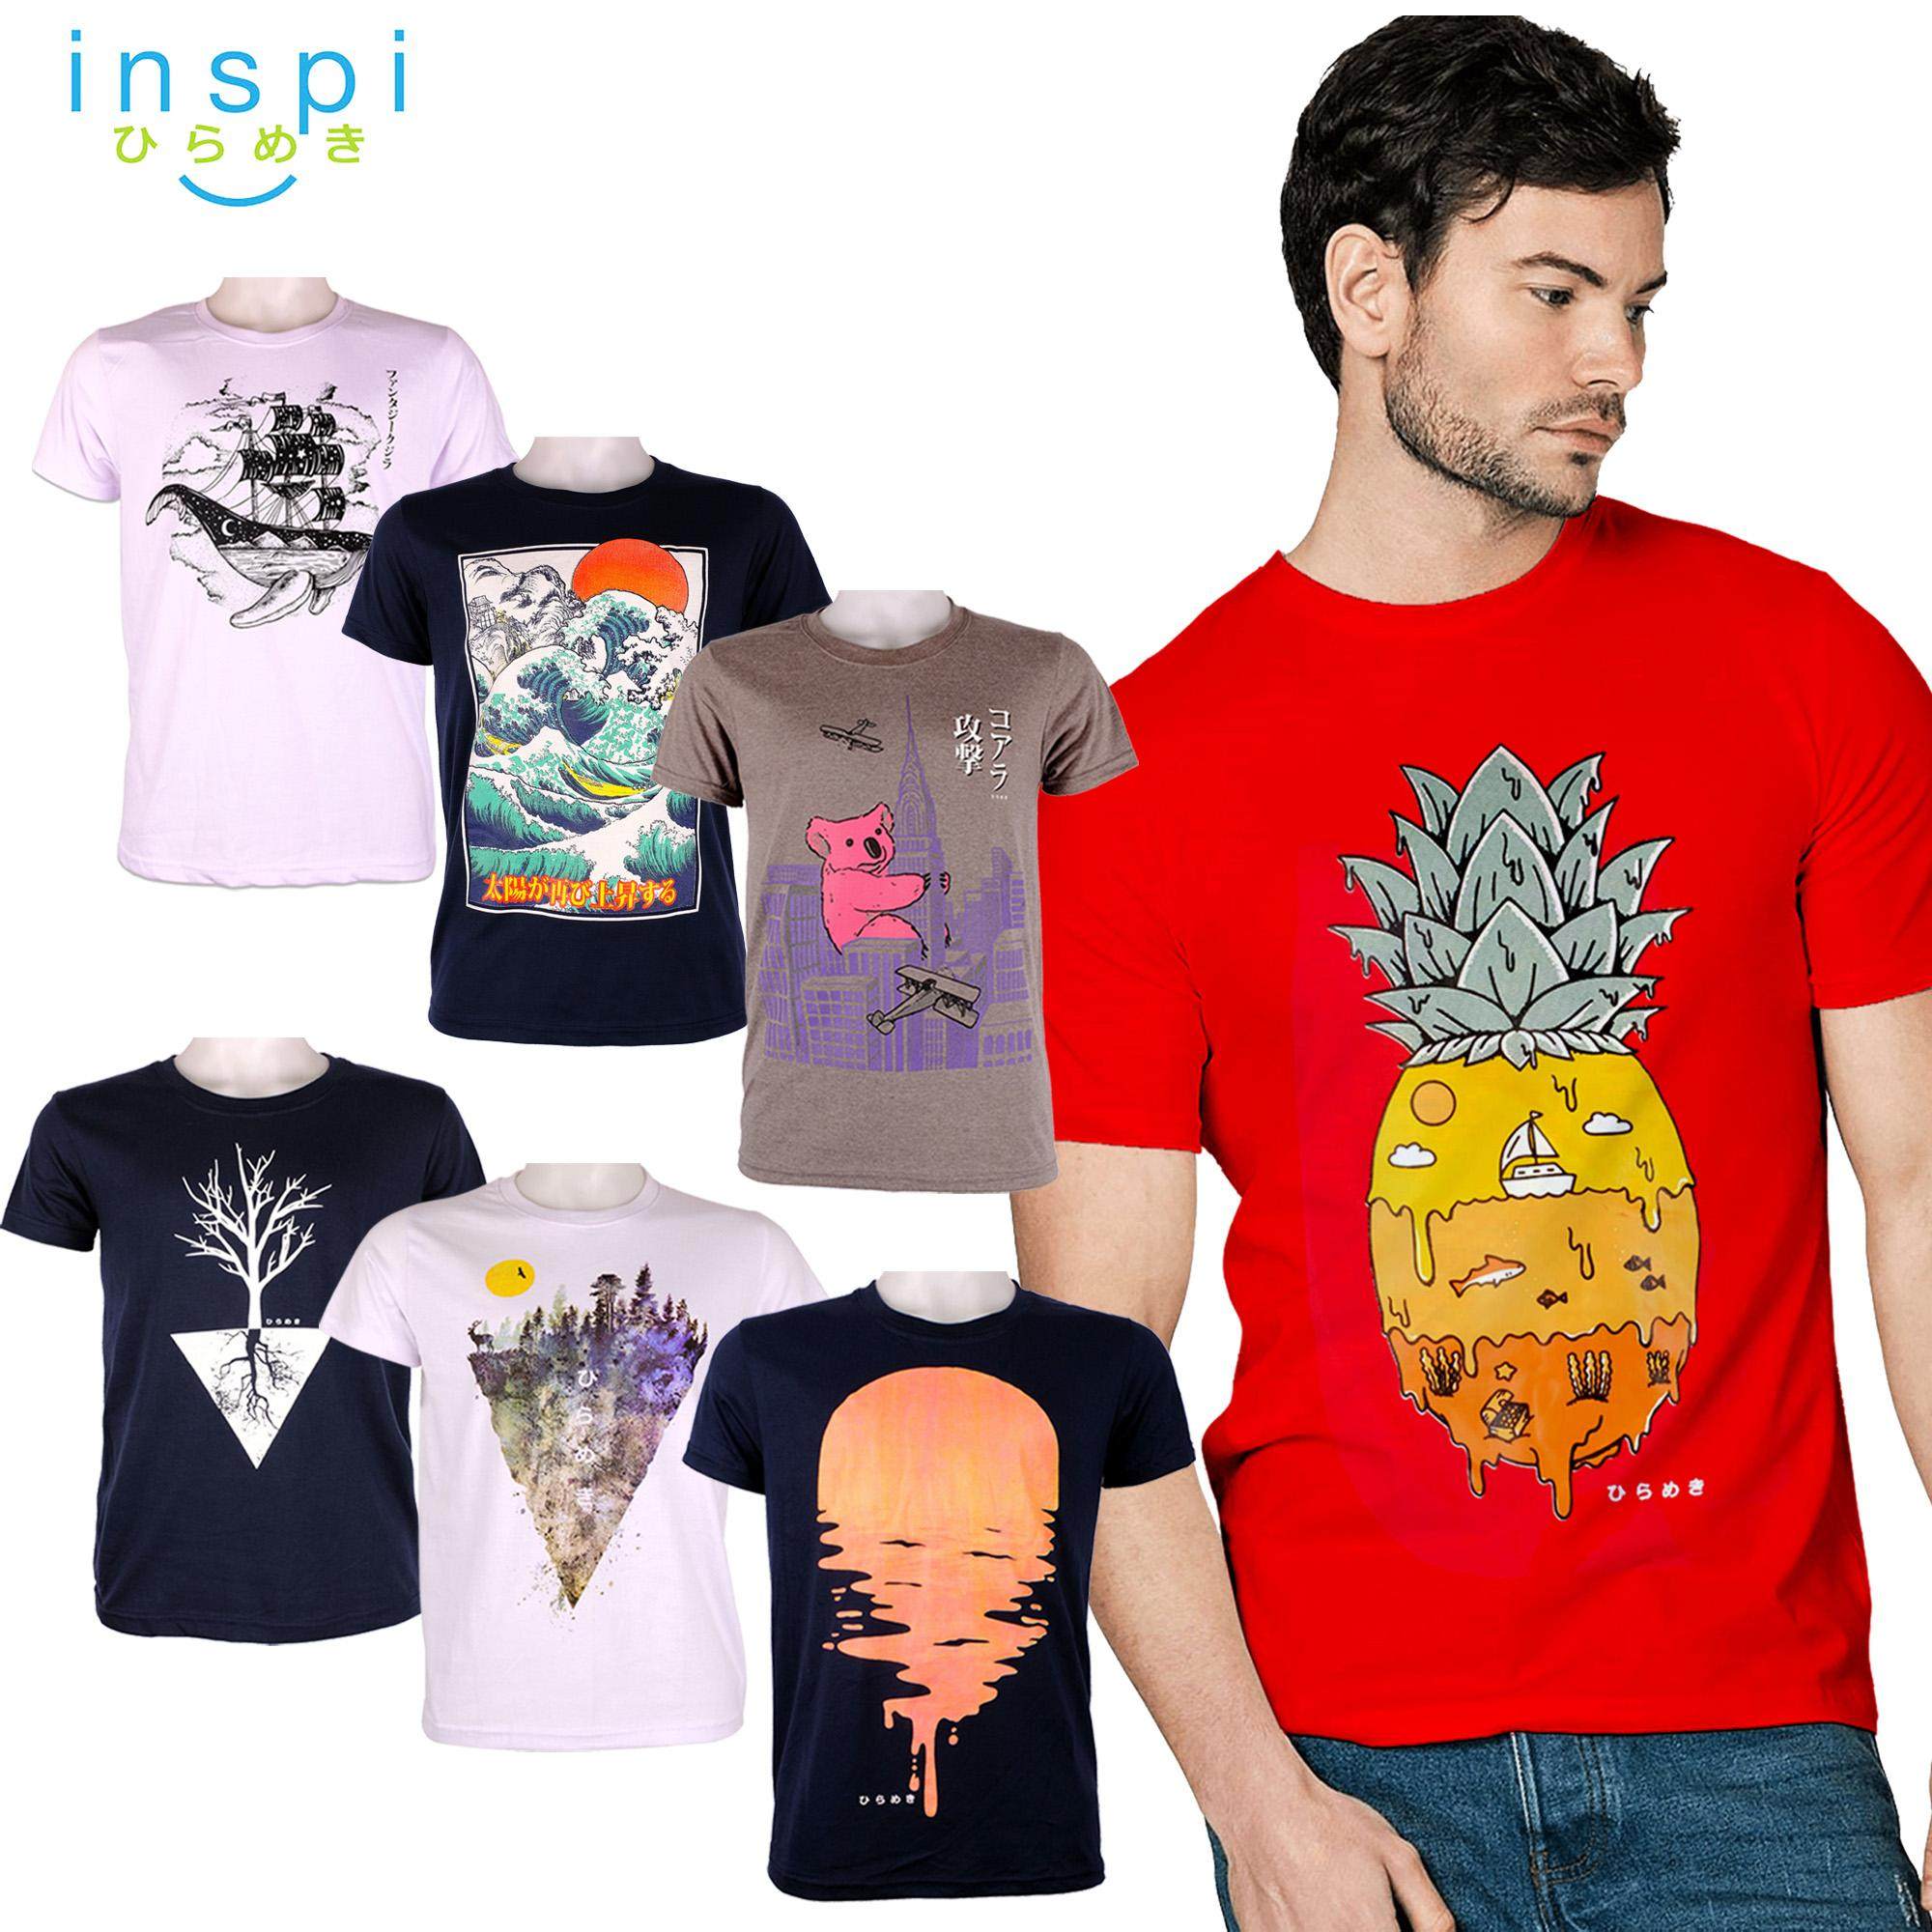 08767db39 INSPI Tees Nature Collection tshirt printed graphic tee Mens t shirt shirts  for men tshirts sale